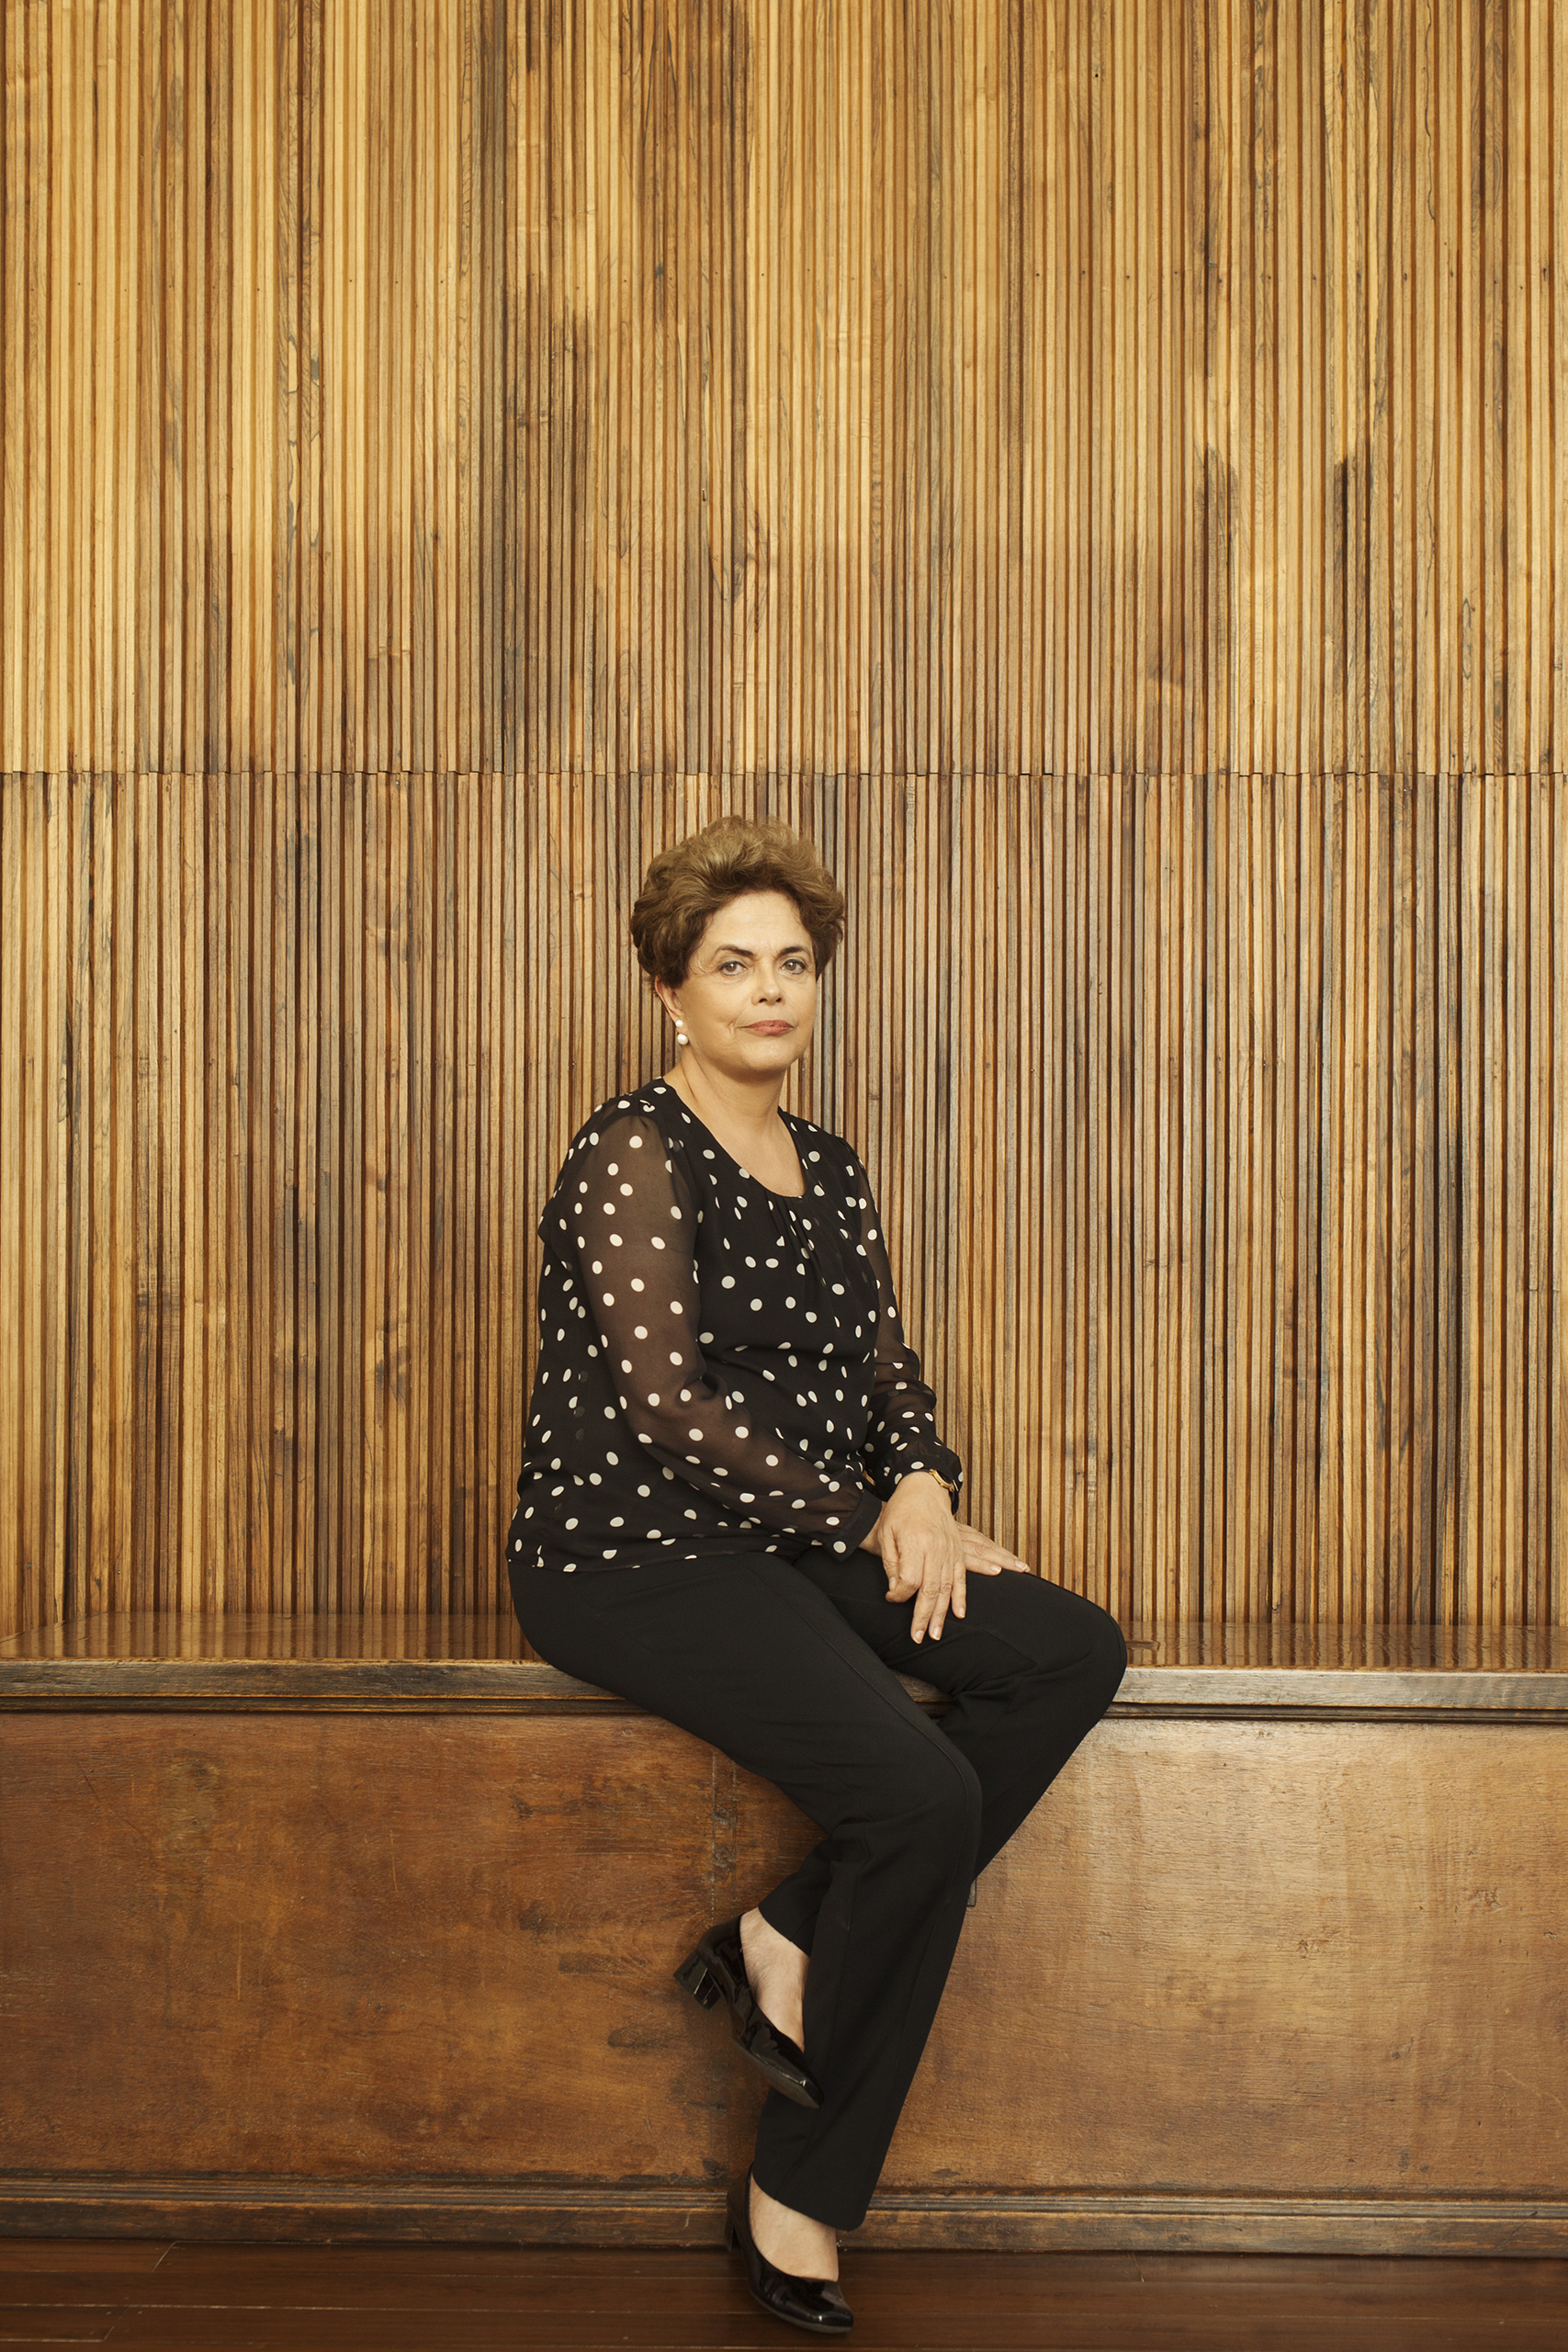 Suspended Brazilian President Dilma Rousseff at the Alvorada residential palace in Brasilia on July 22, 2016.